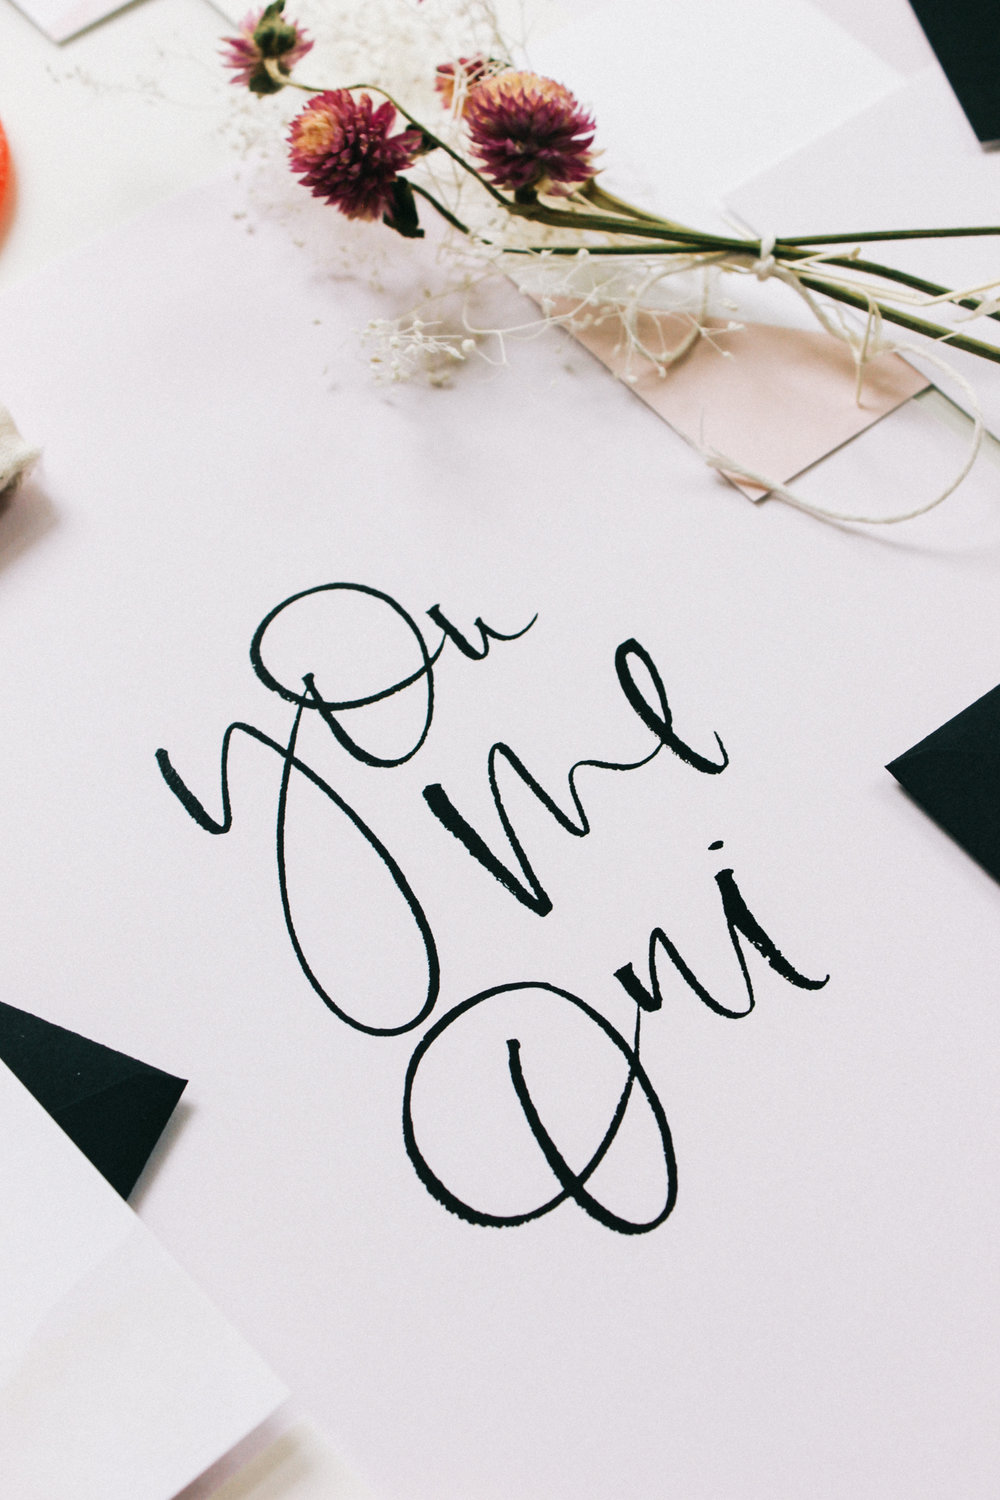 Wilde House Paper Stationery Subscription Box | You Me Out, hand lettered print